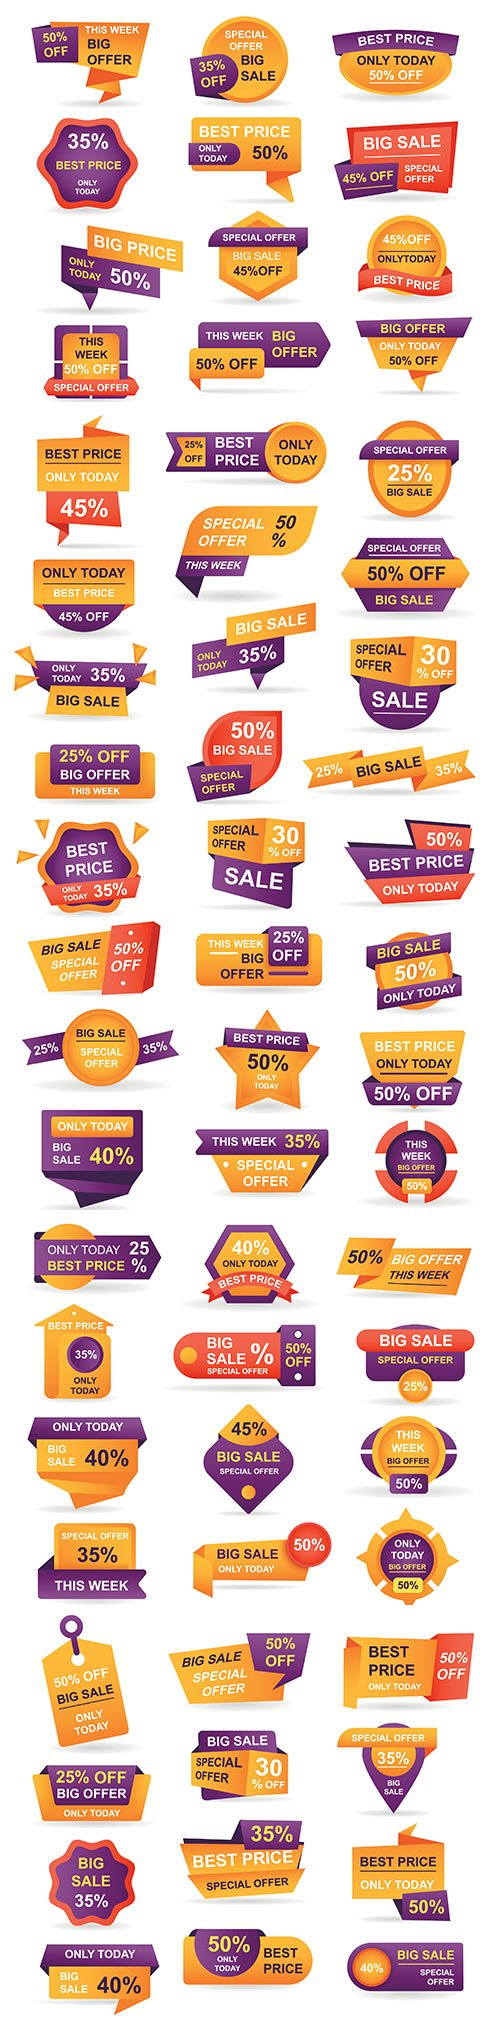 Stickers best offer price and big sale pricing tag